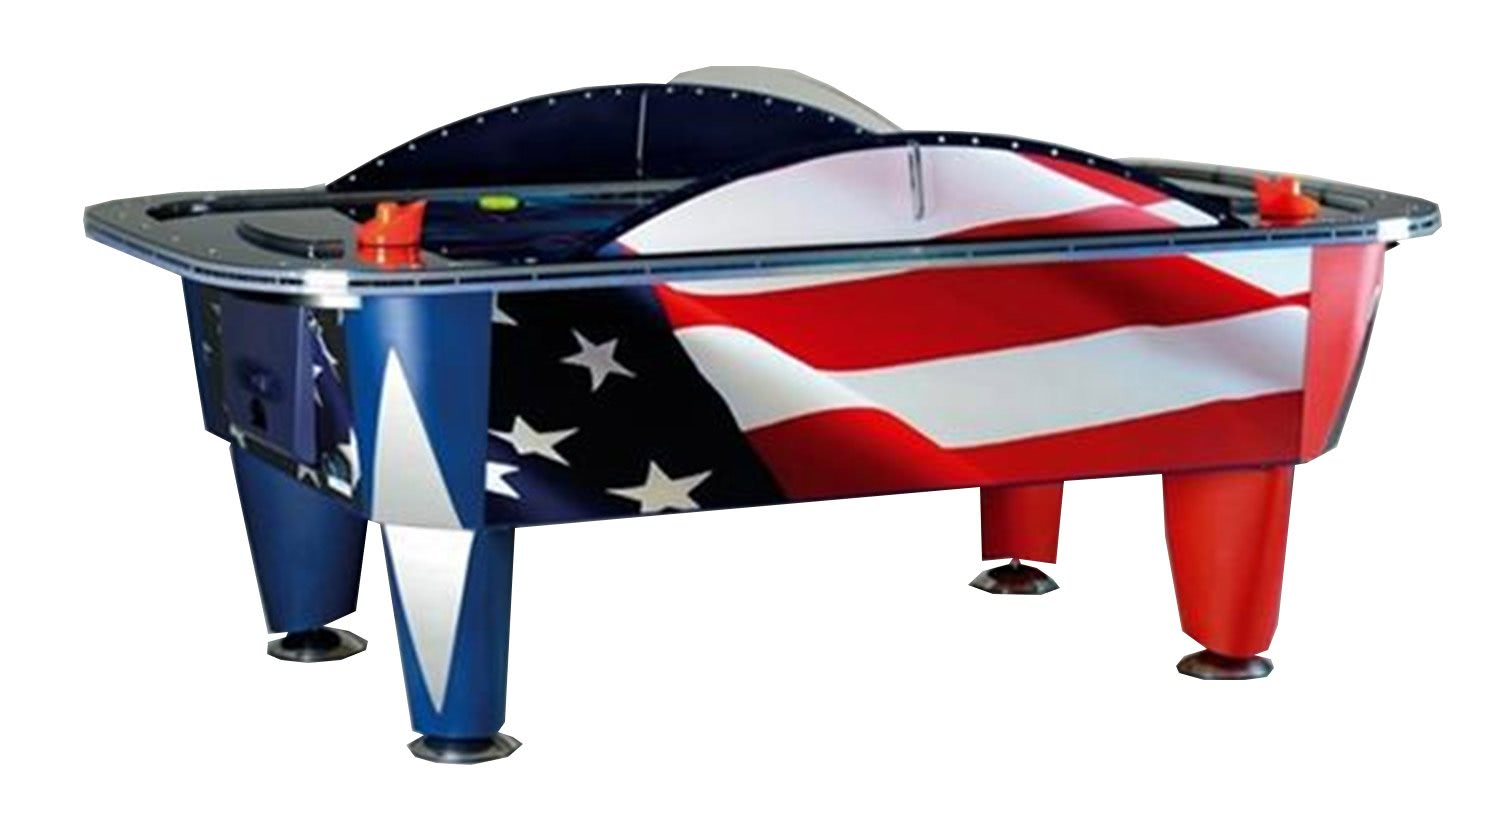 Yukon patriot 8 foot commercial air hockey table liberty for Table hockey